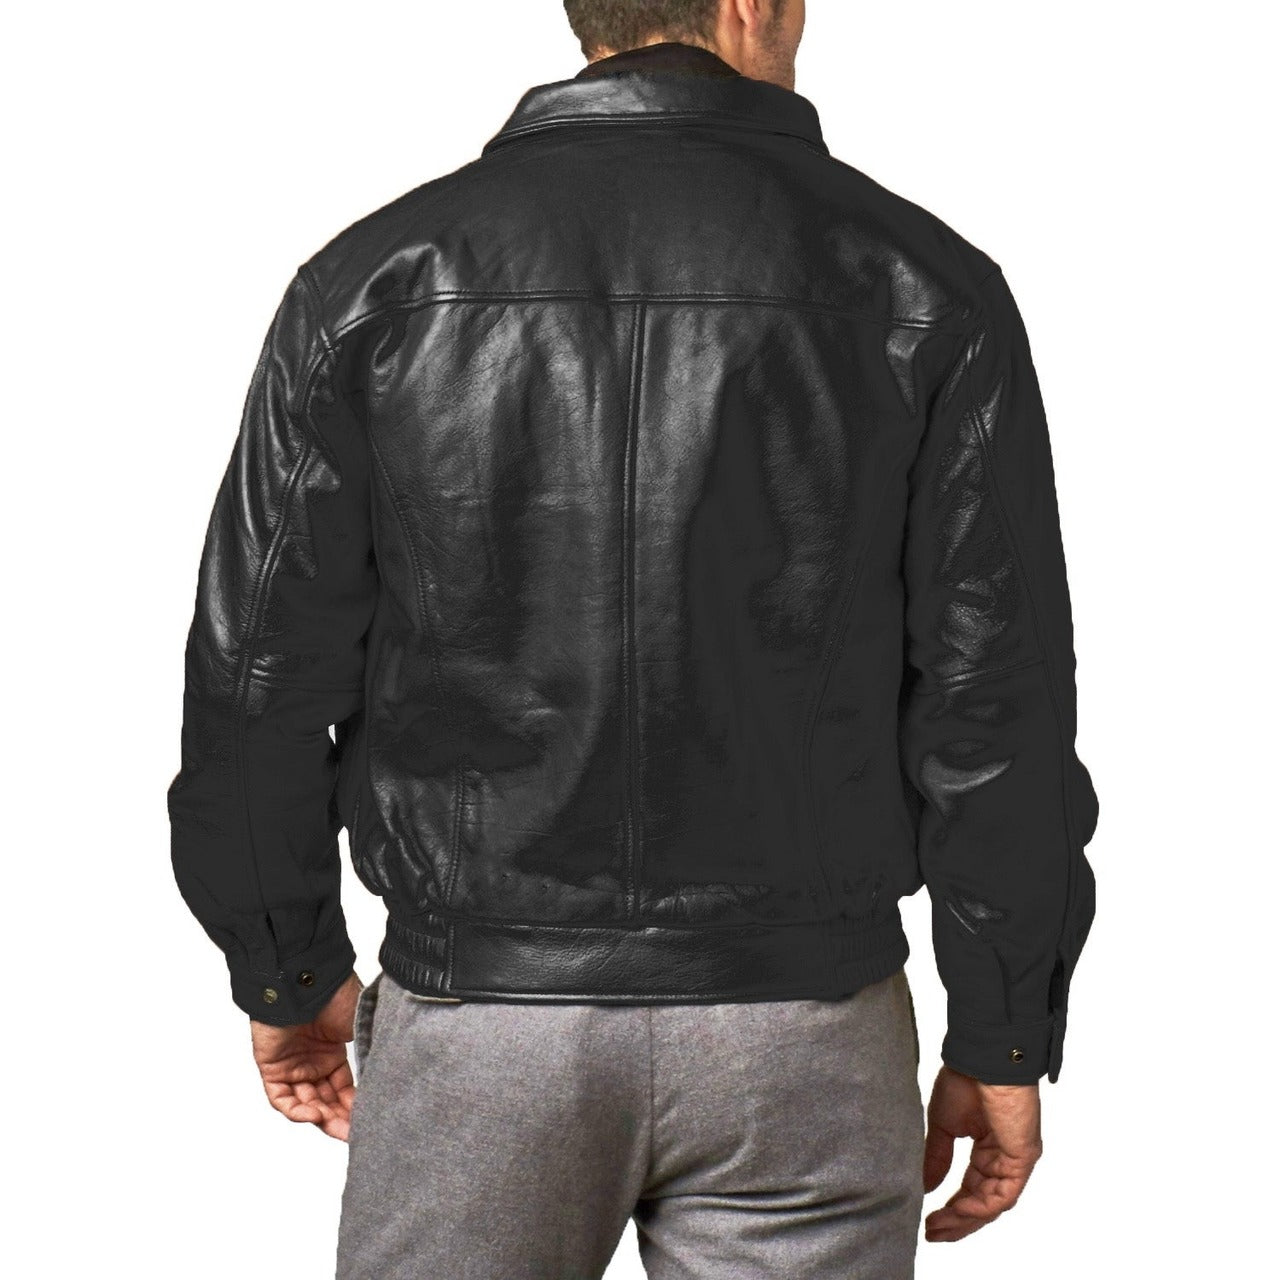 Classic Design Genuine Sheep Leather Jacket Black For Men